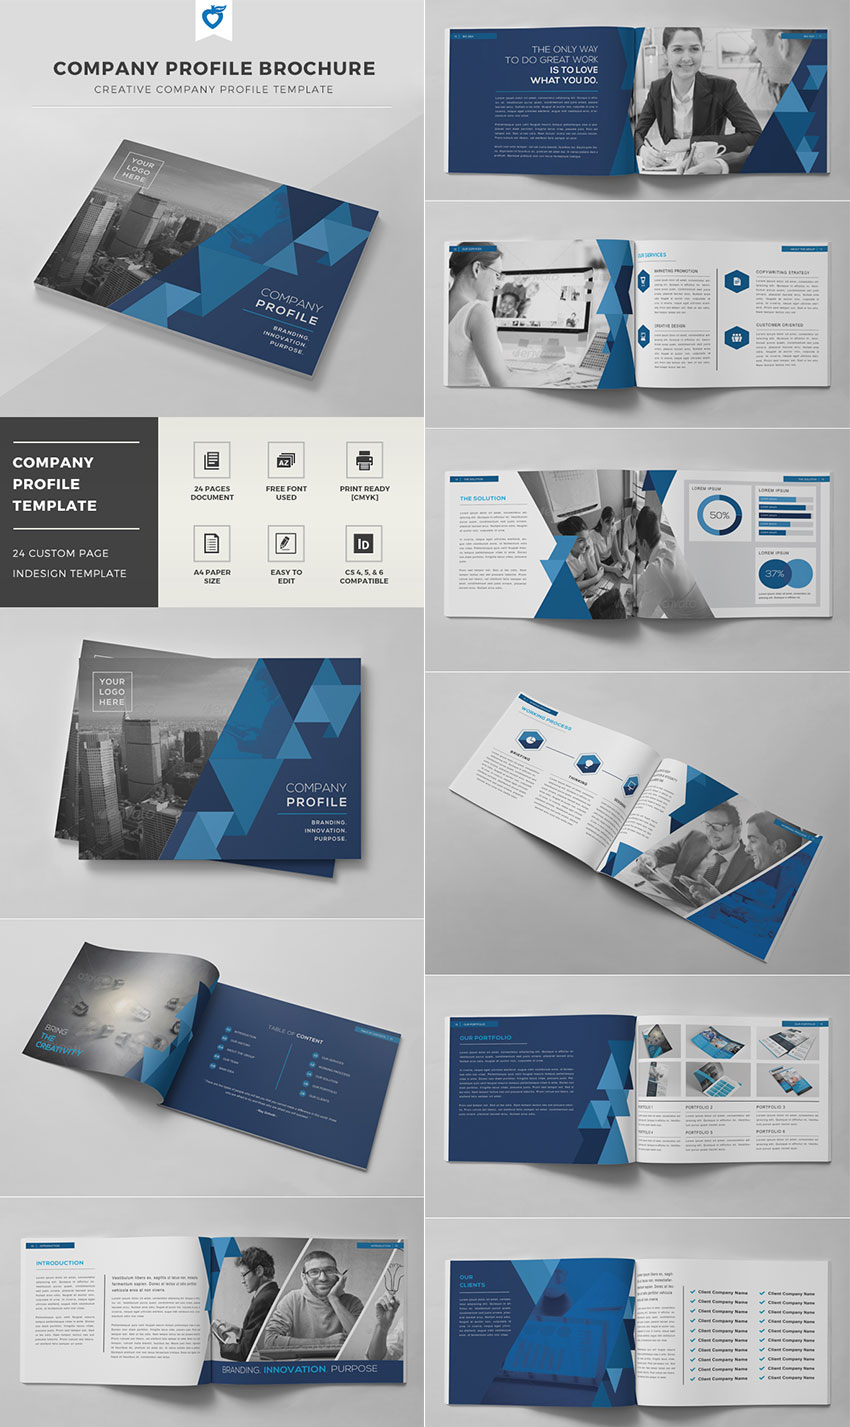 free corporate brochure templates - 20 best indesign brochure templates for creative